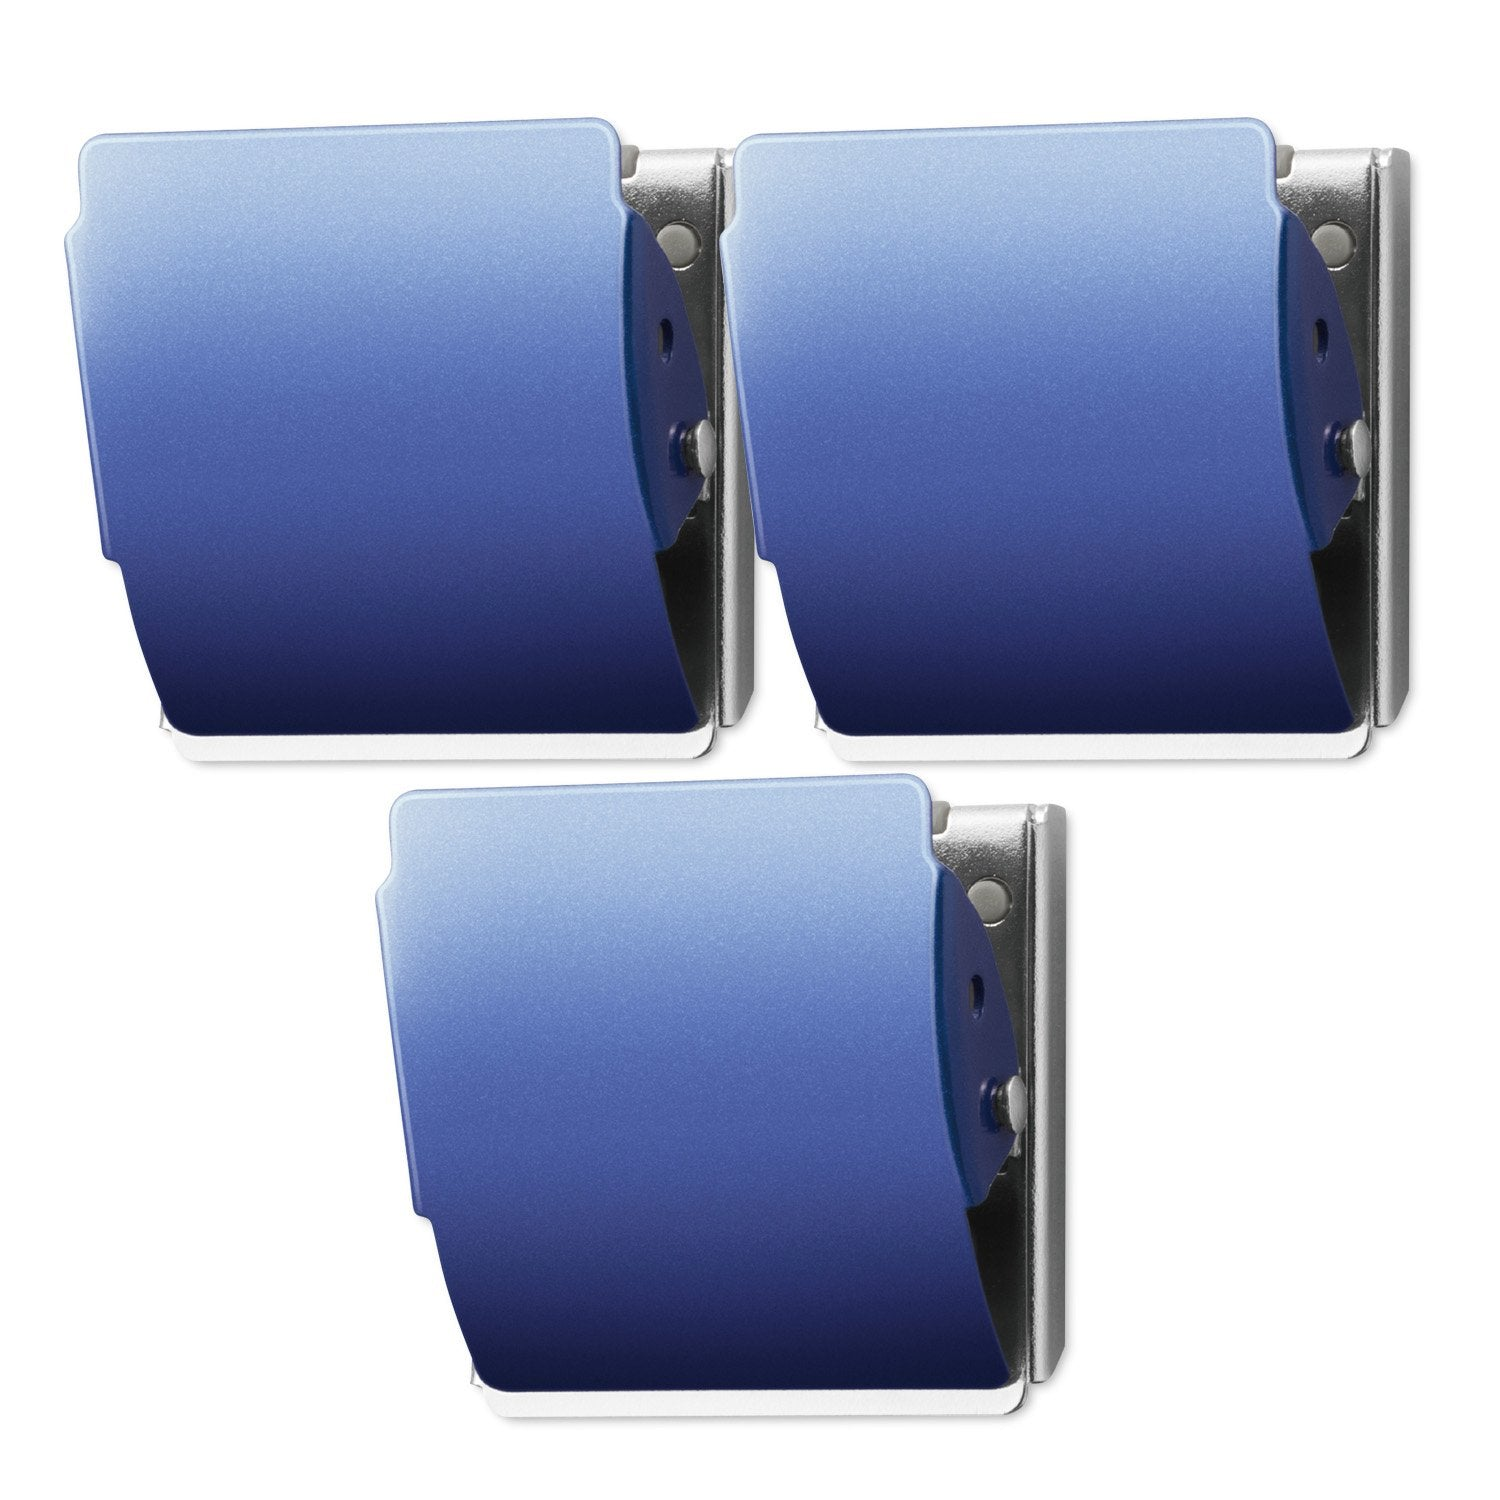 PLUS Extra Strong Magnetic Clip LARGE Blue - 3 Pack